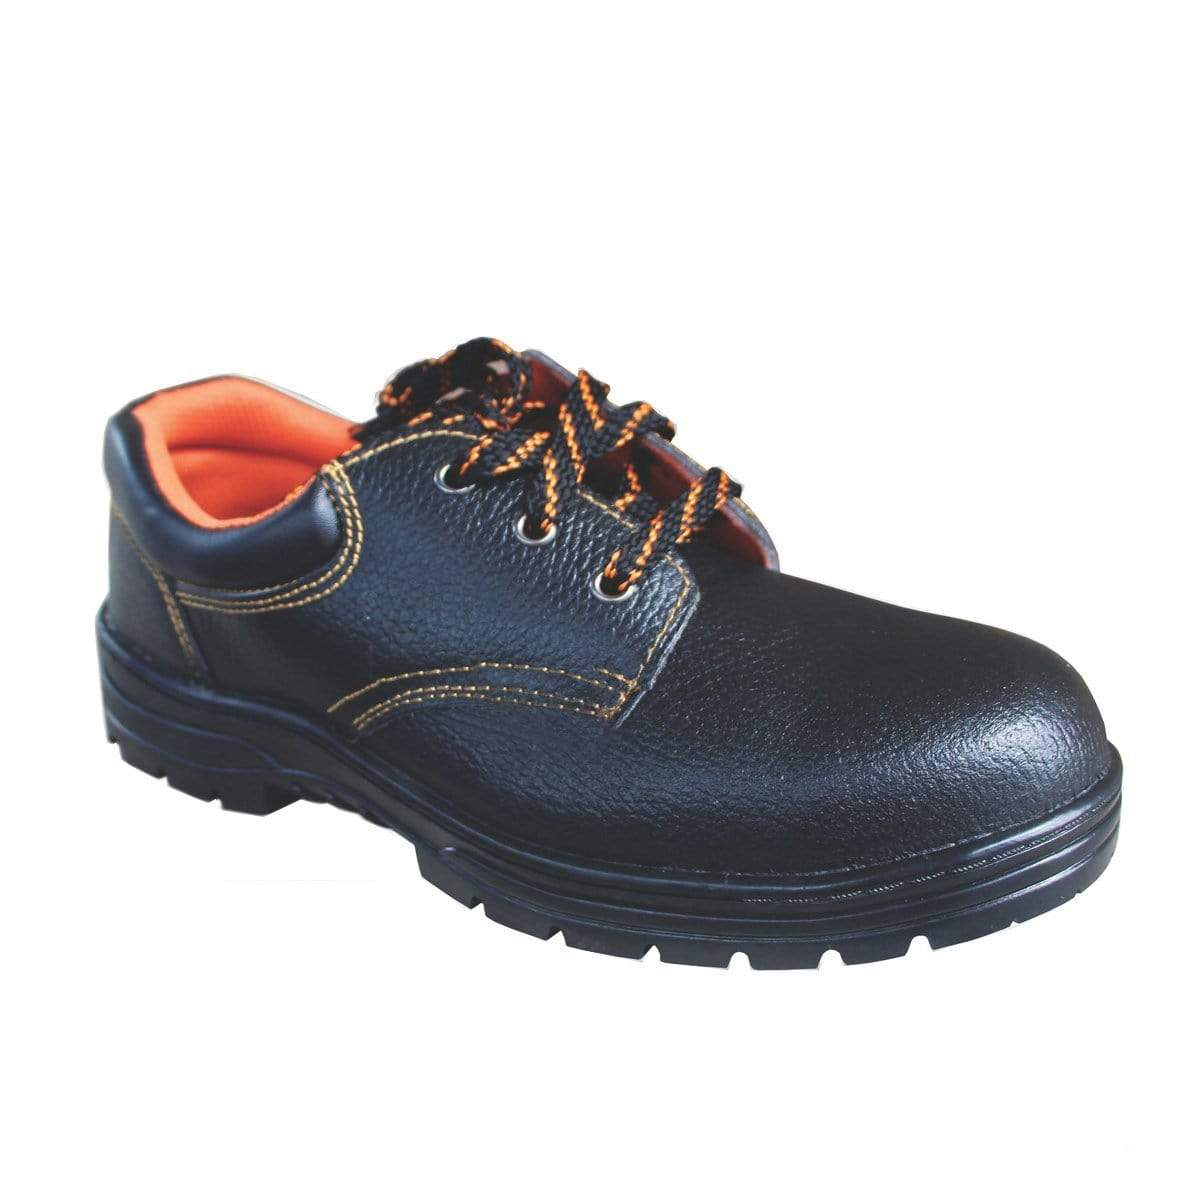 ANEKA Worker Safety Shoes Safety Boots Steel Toe Cap Kasut UK7 1000#